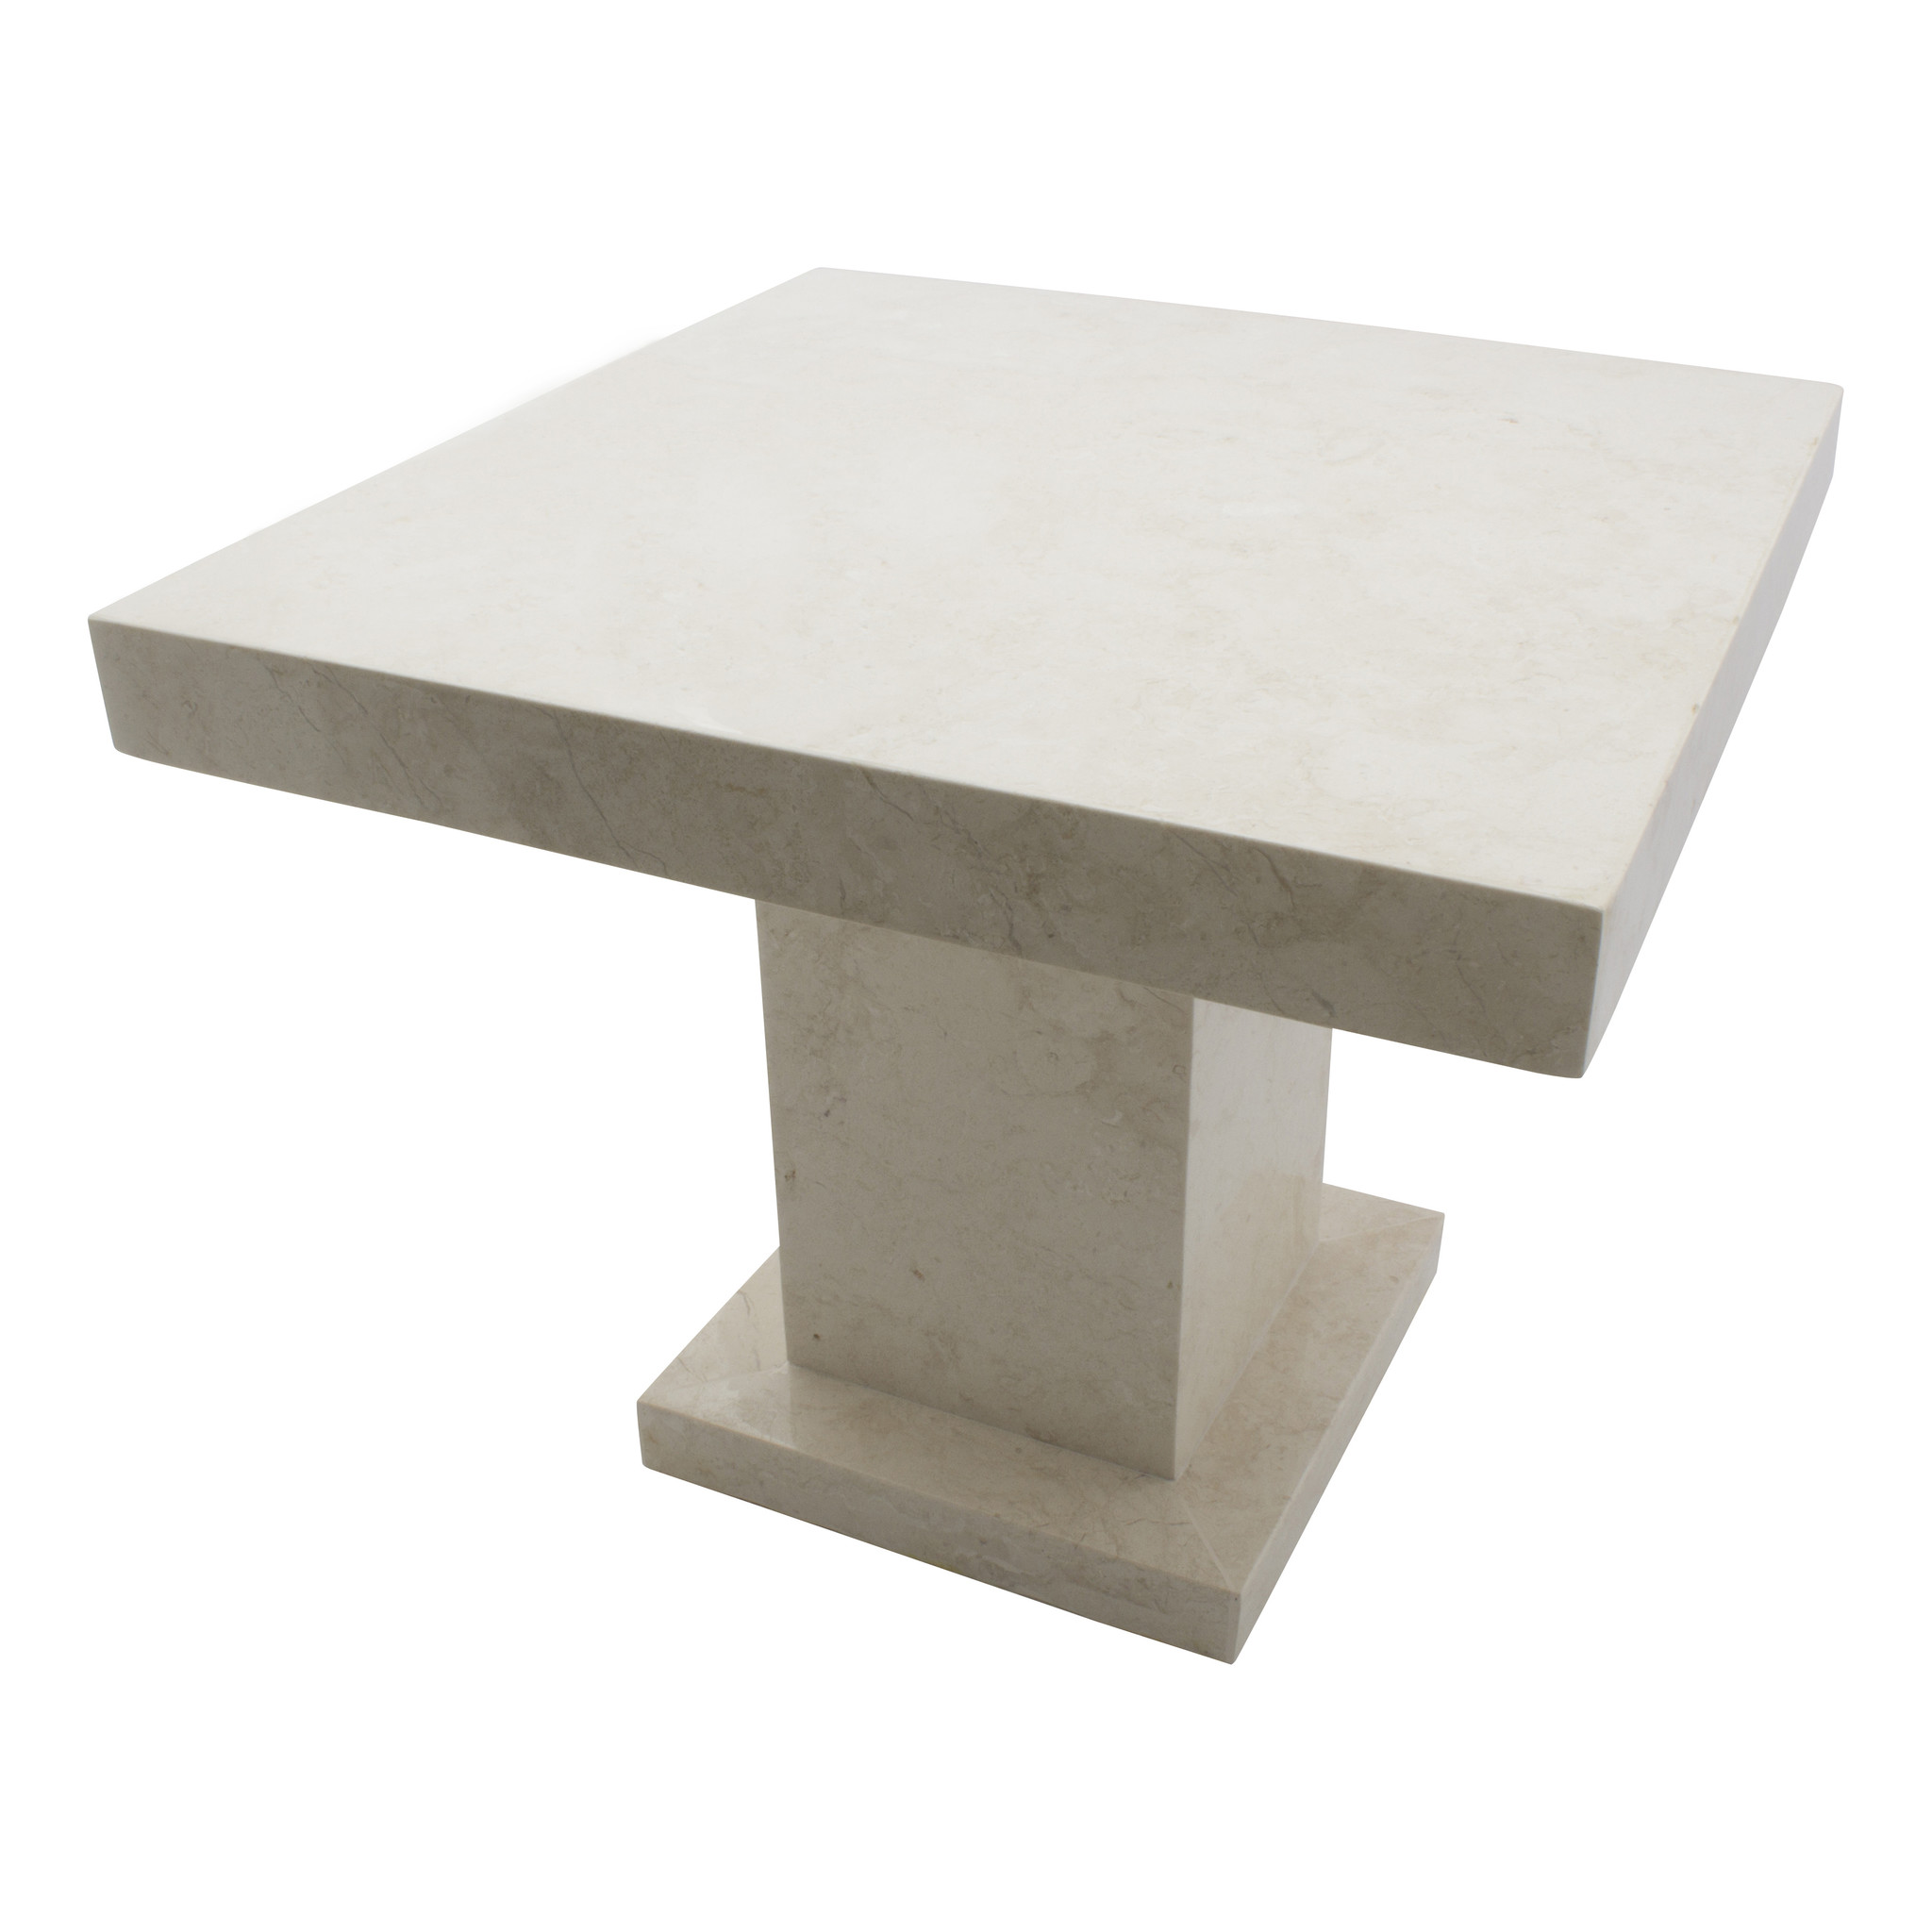 side table square 50x50x40 cm cream